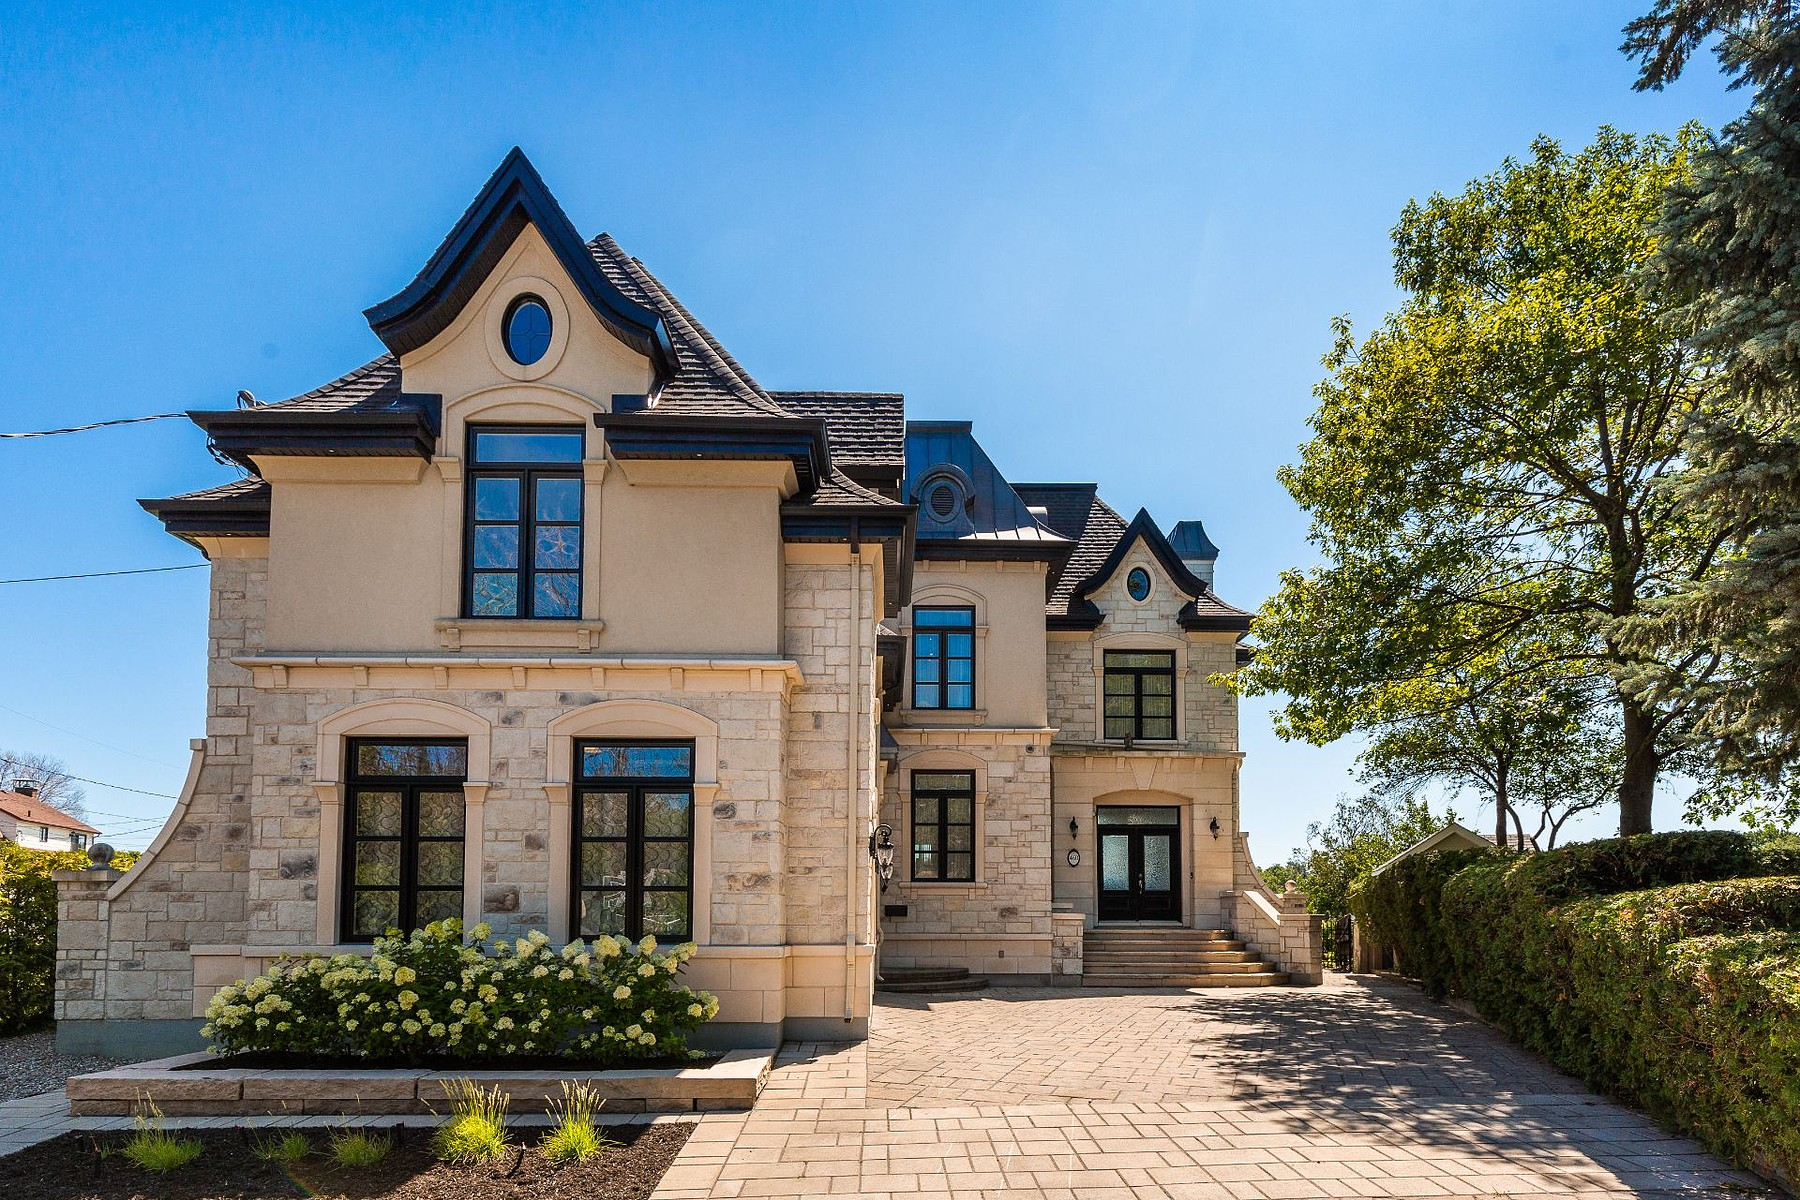 Single Family Homes for Sale at Sainte-Dorothée, Laval 460 Tsse de la Capricieuse Sainte-Dorothee, Quebec H7X2N7 Canada